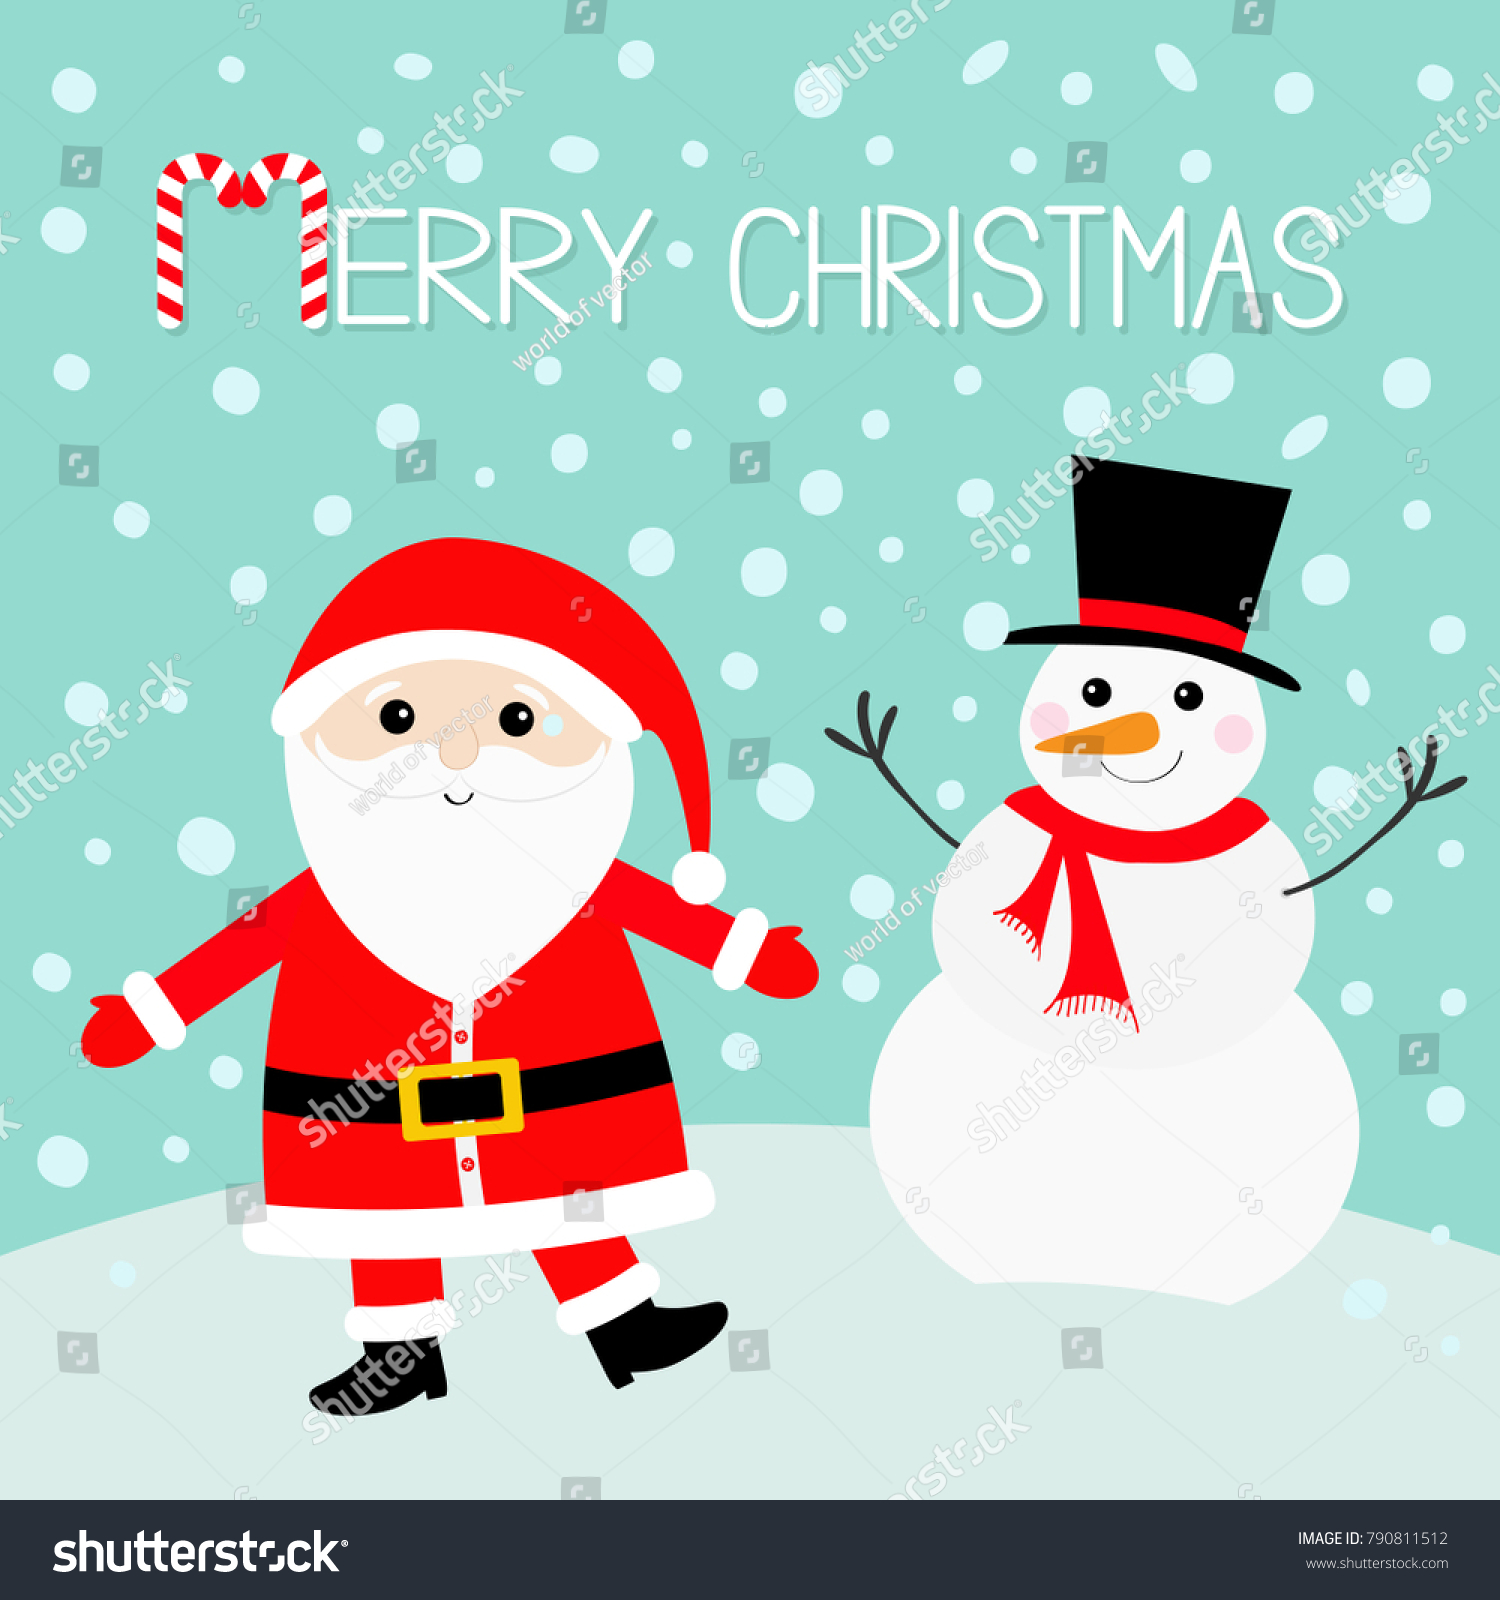 Snowman Santa Claus wearing red hat, costume, big beard, belt buckle ...